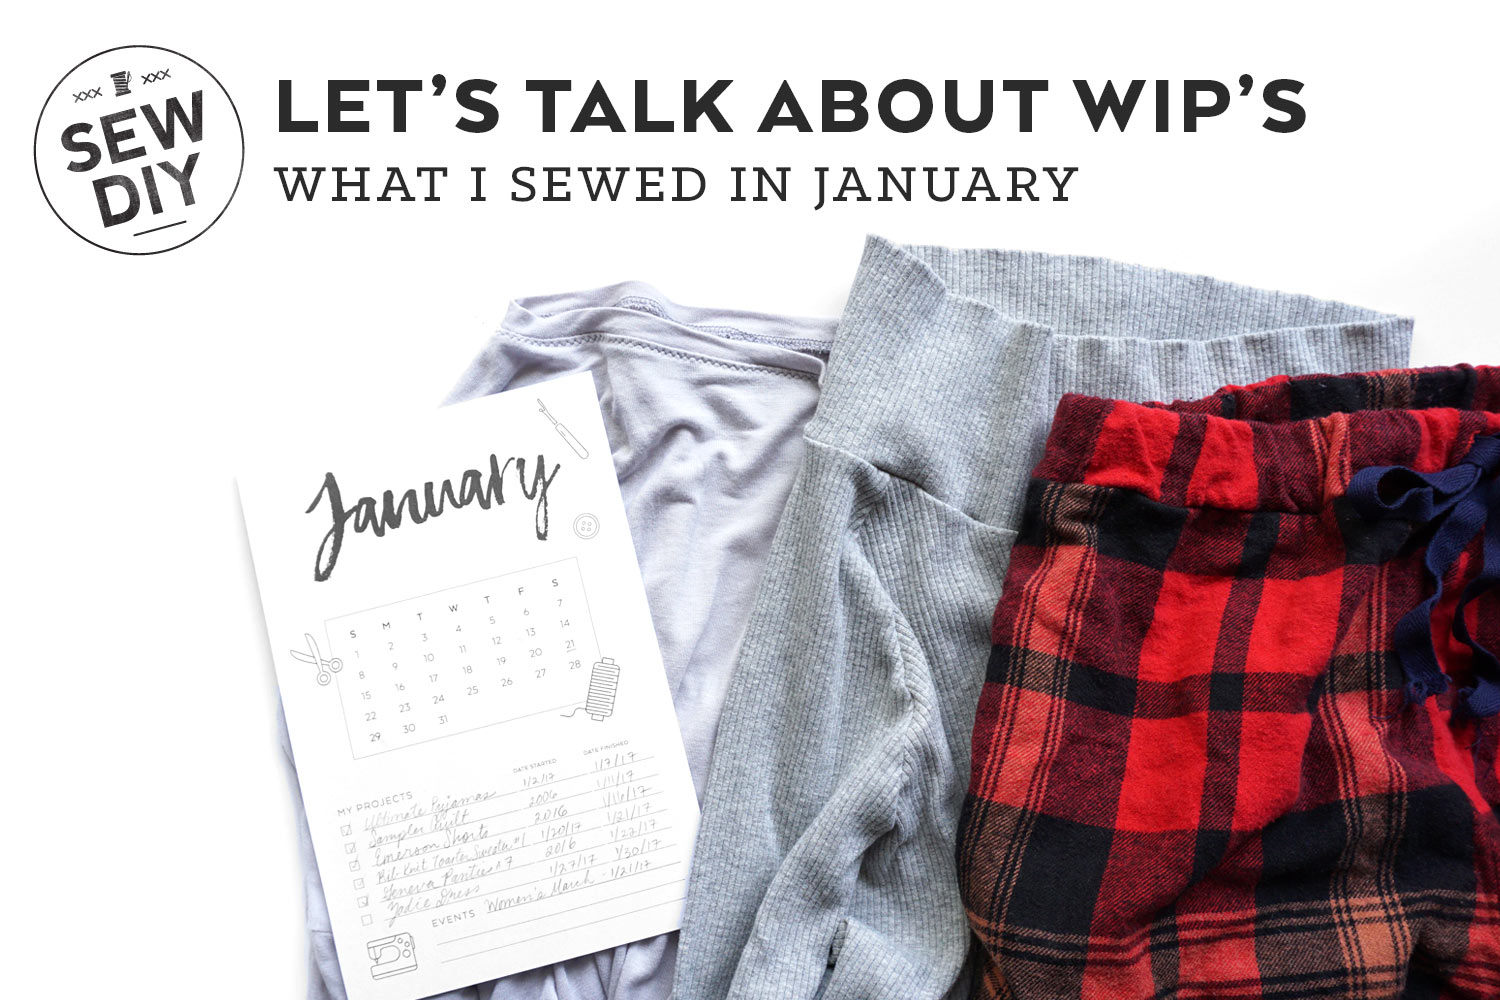 Let's talk about WIP's –What I made in January | Sew DIY